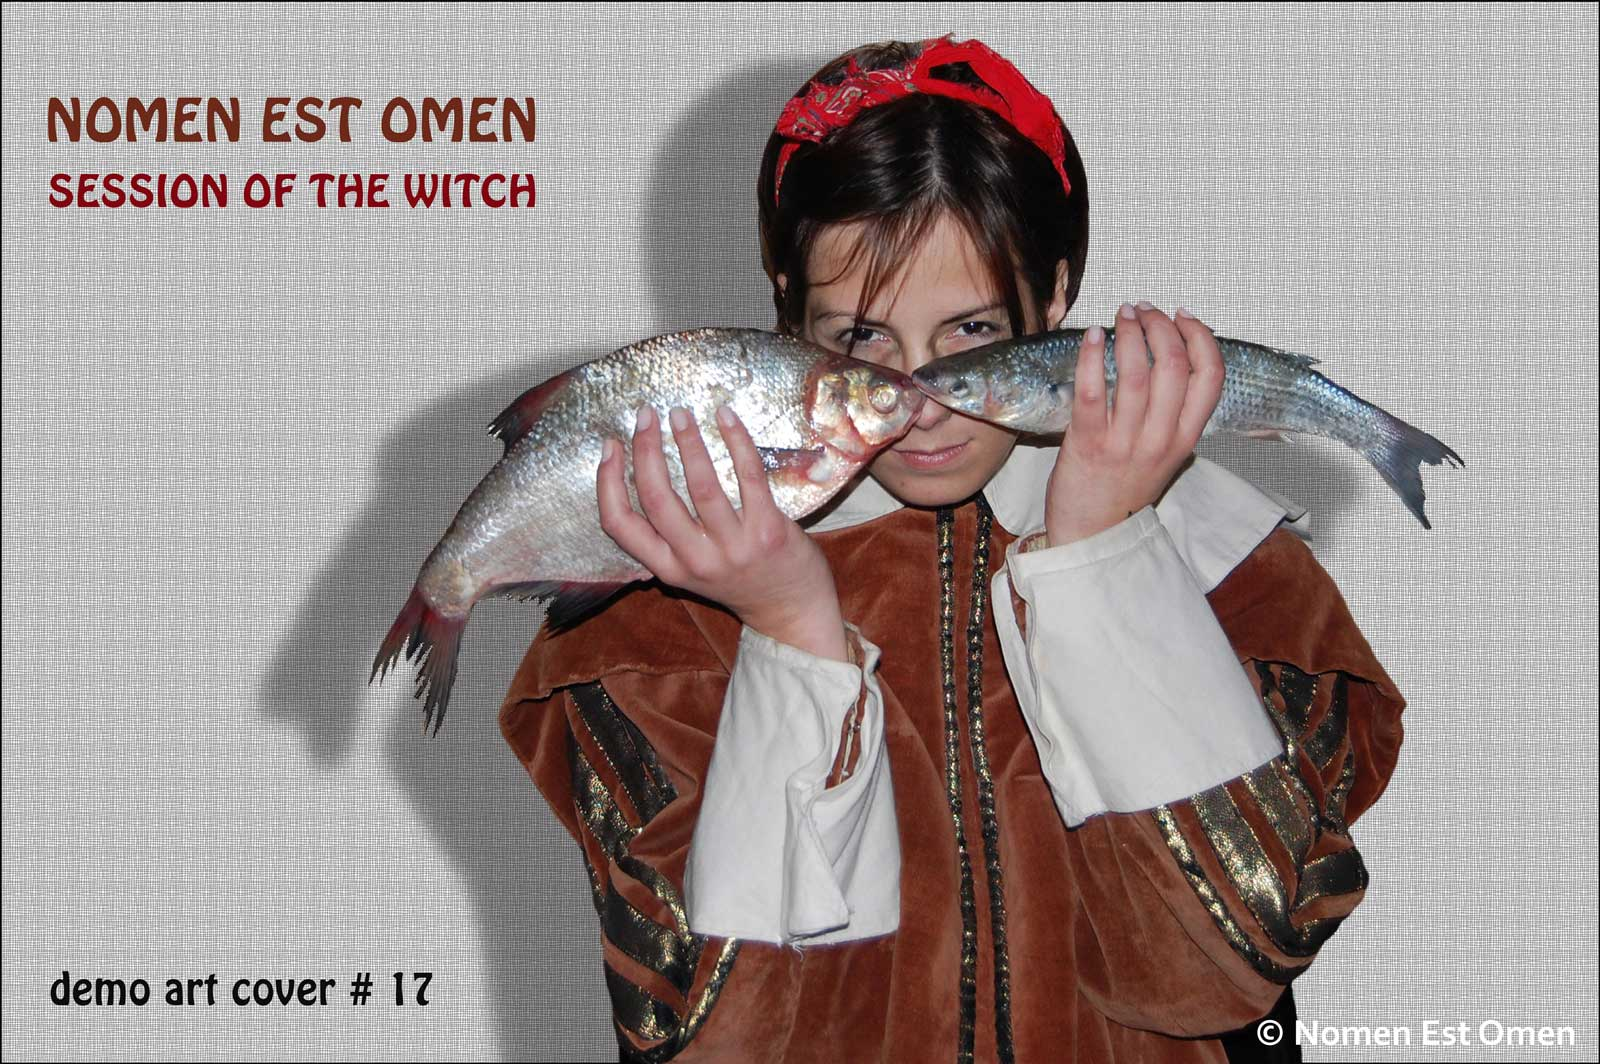 Nomen Est Omen - Session of the Witch